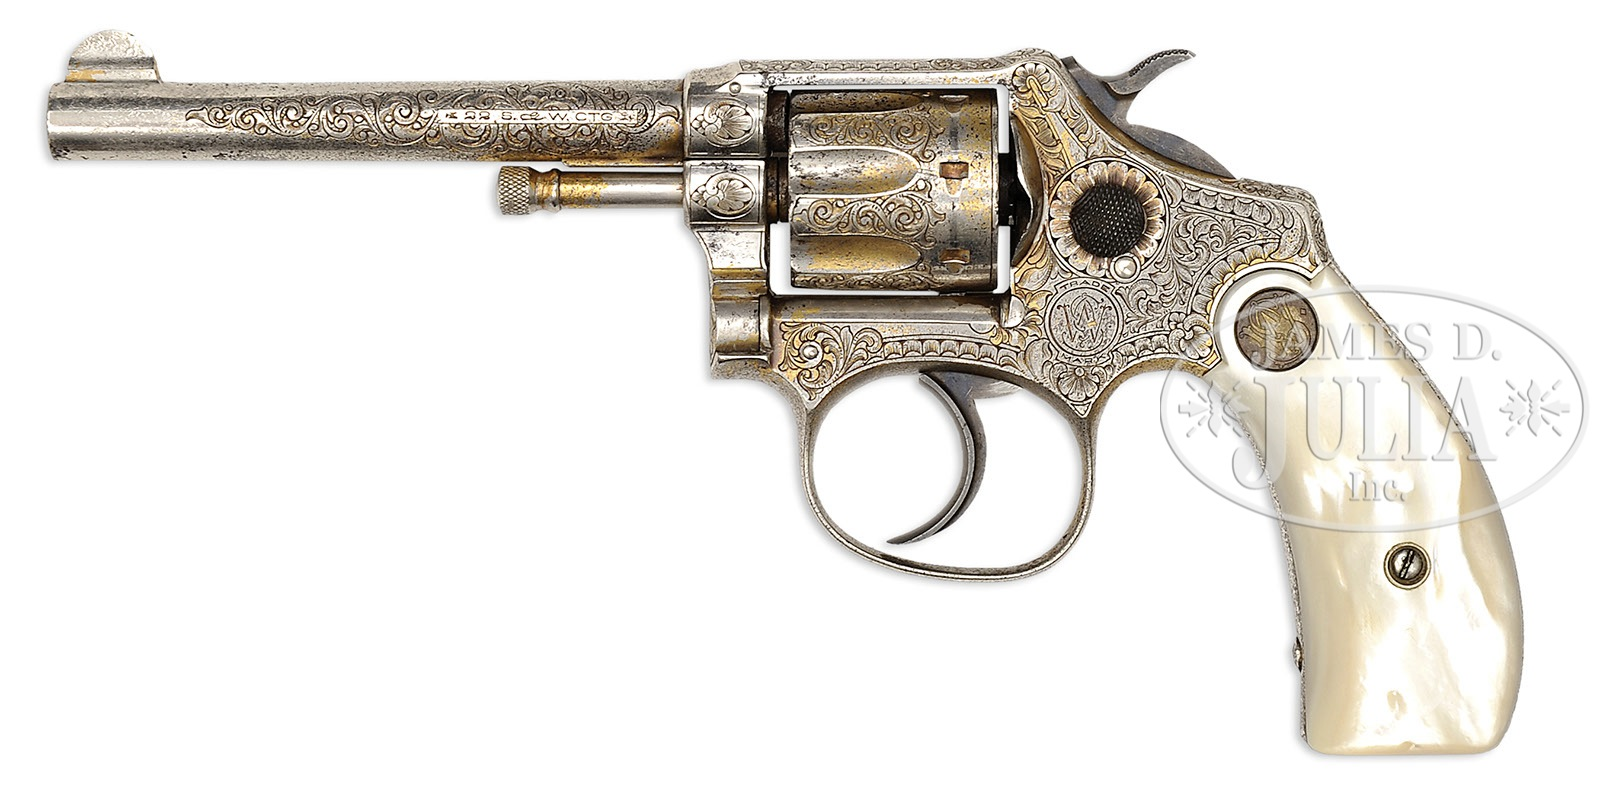 RARE ENGRAVED AND INSCRIBED SMITH & WESSON FIRST MODEL